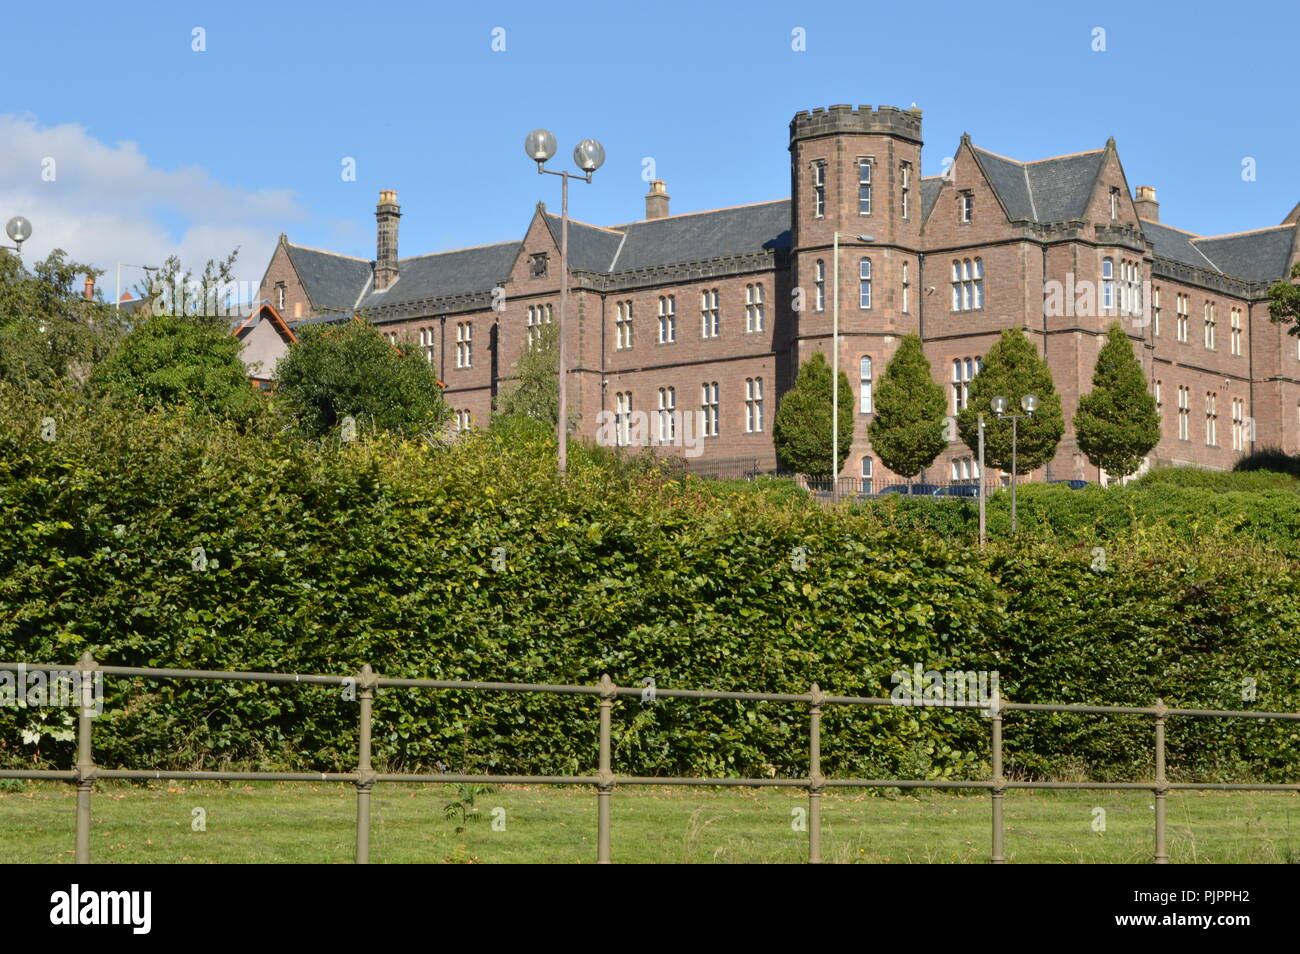 Former Royal Infirmary from Dudhope Castle, ancient seat of the Scrimgeour Family, Dundee, Scotland, September 2018 - Stock Image